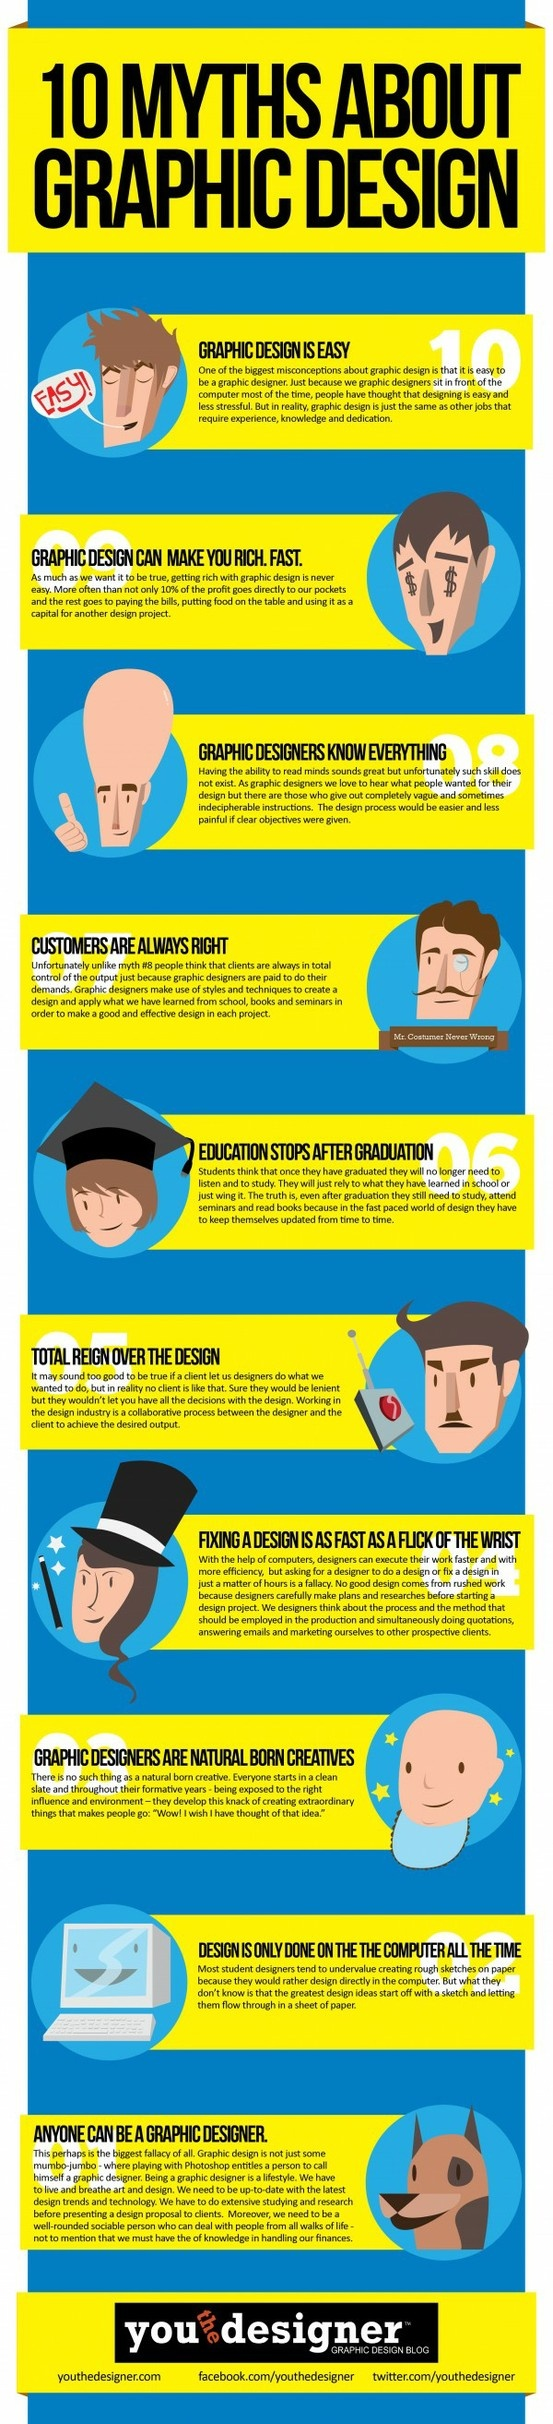 Cool Infographic: What graphic design and being a graphic designer really is...